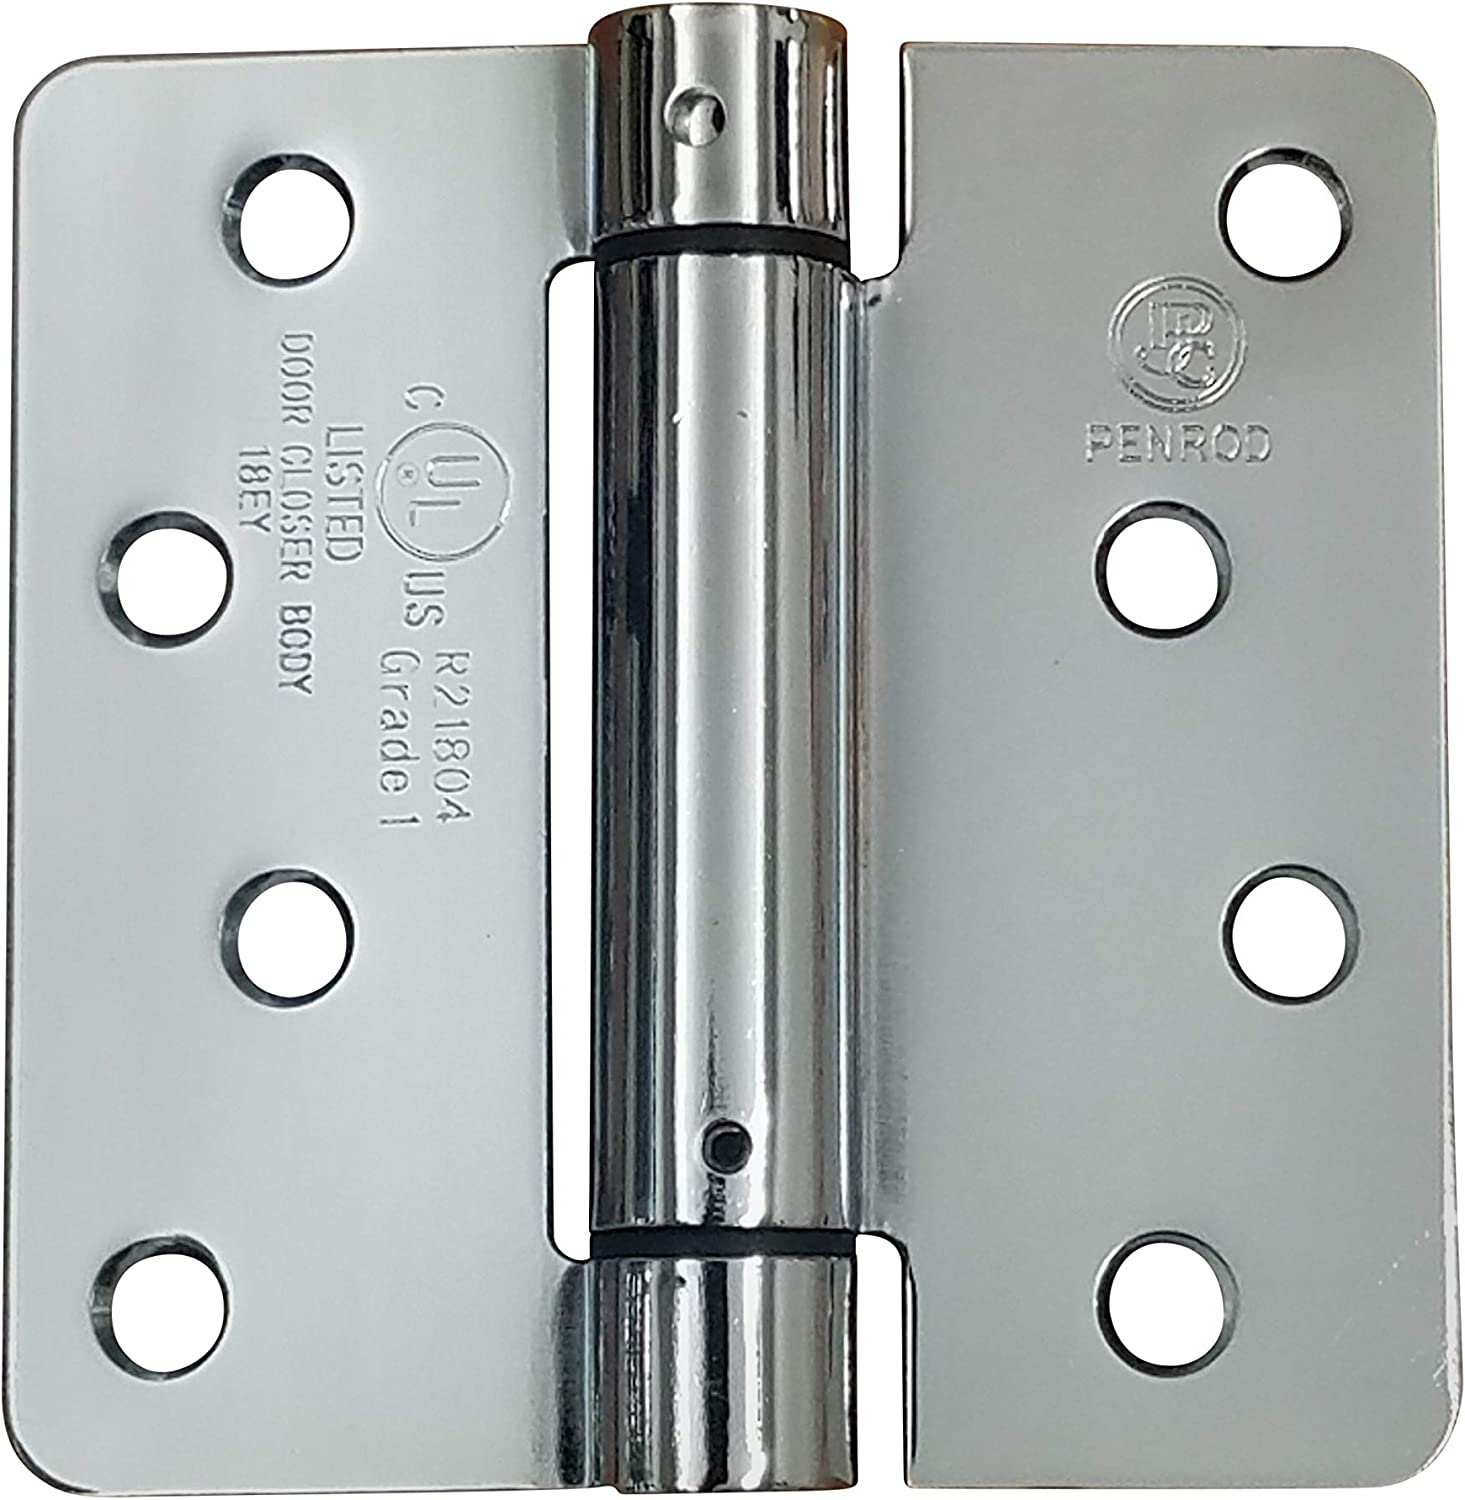 Spring Hinges Adjustable Self Closing 4 Inch With 1 4 Inch Radius Polished Chrome 2 Pack Amazon Com